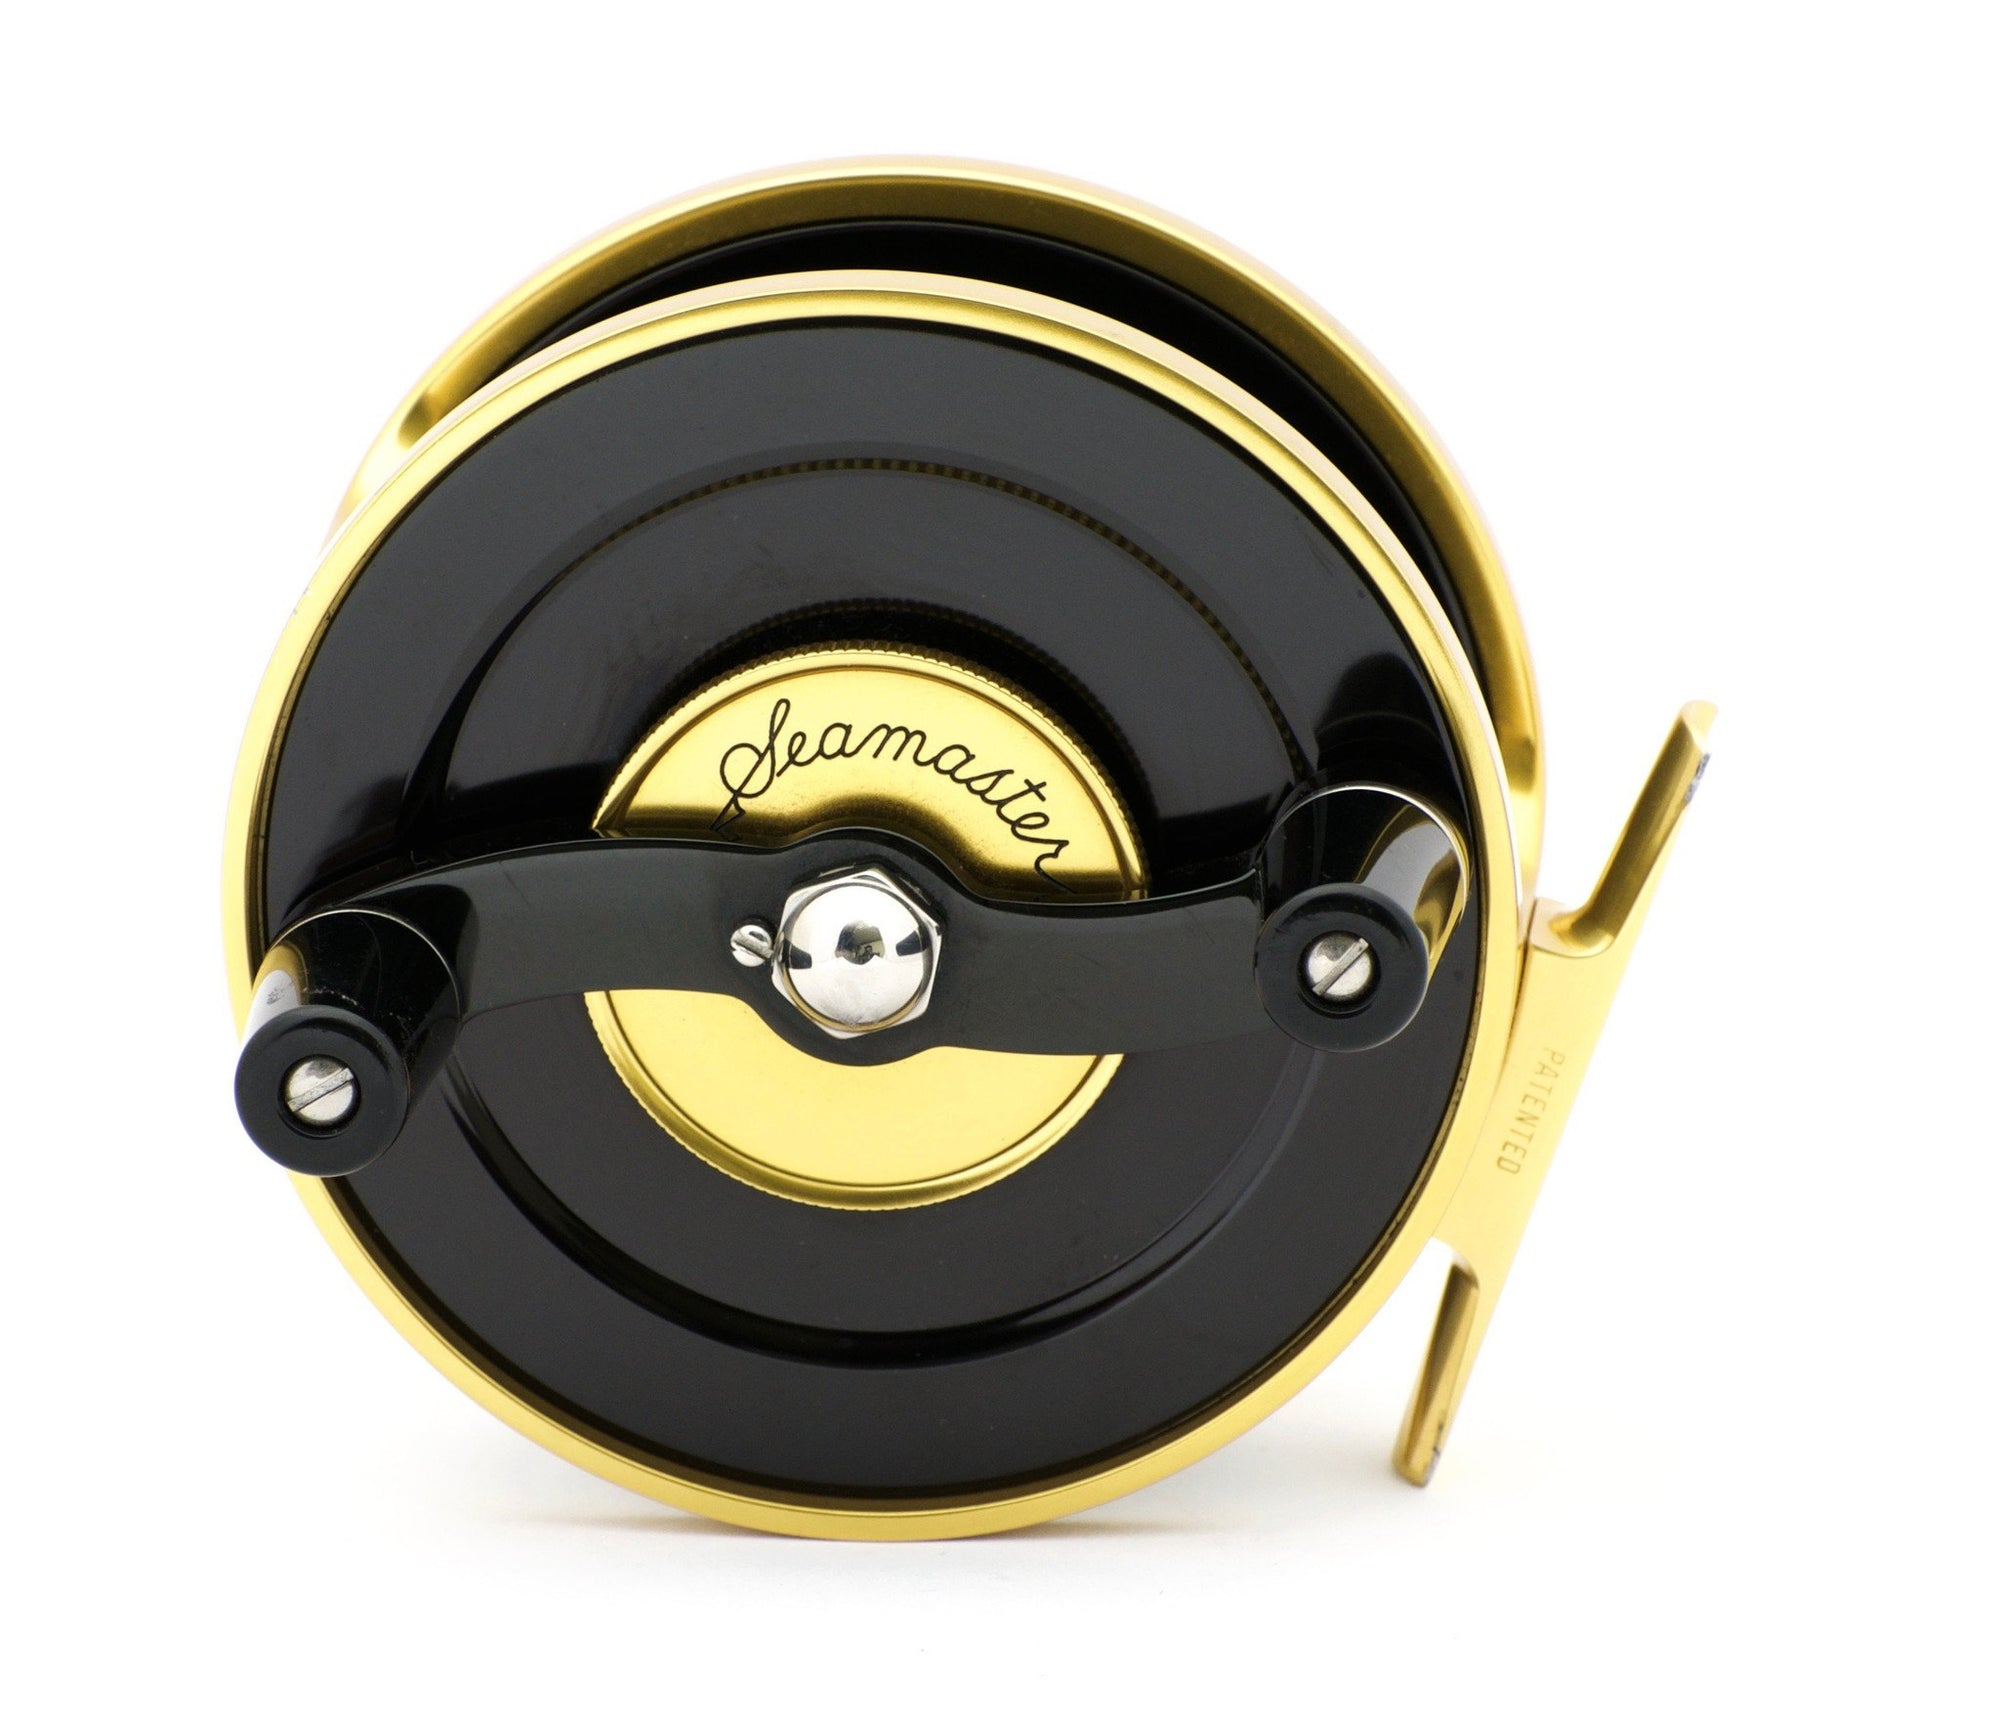 Seamaster Dual Mode Fly Reel - Mark II (LHW)